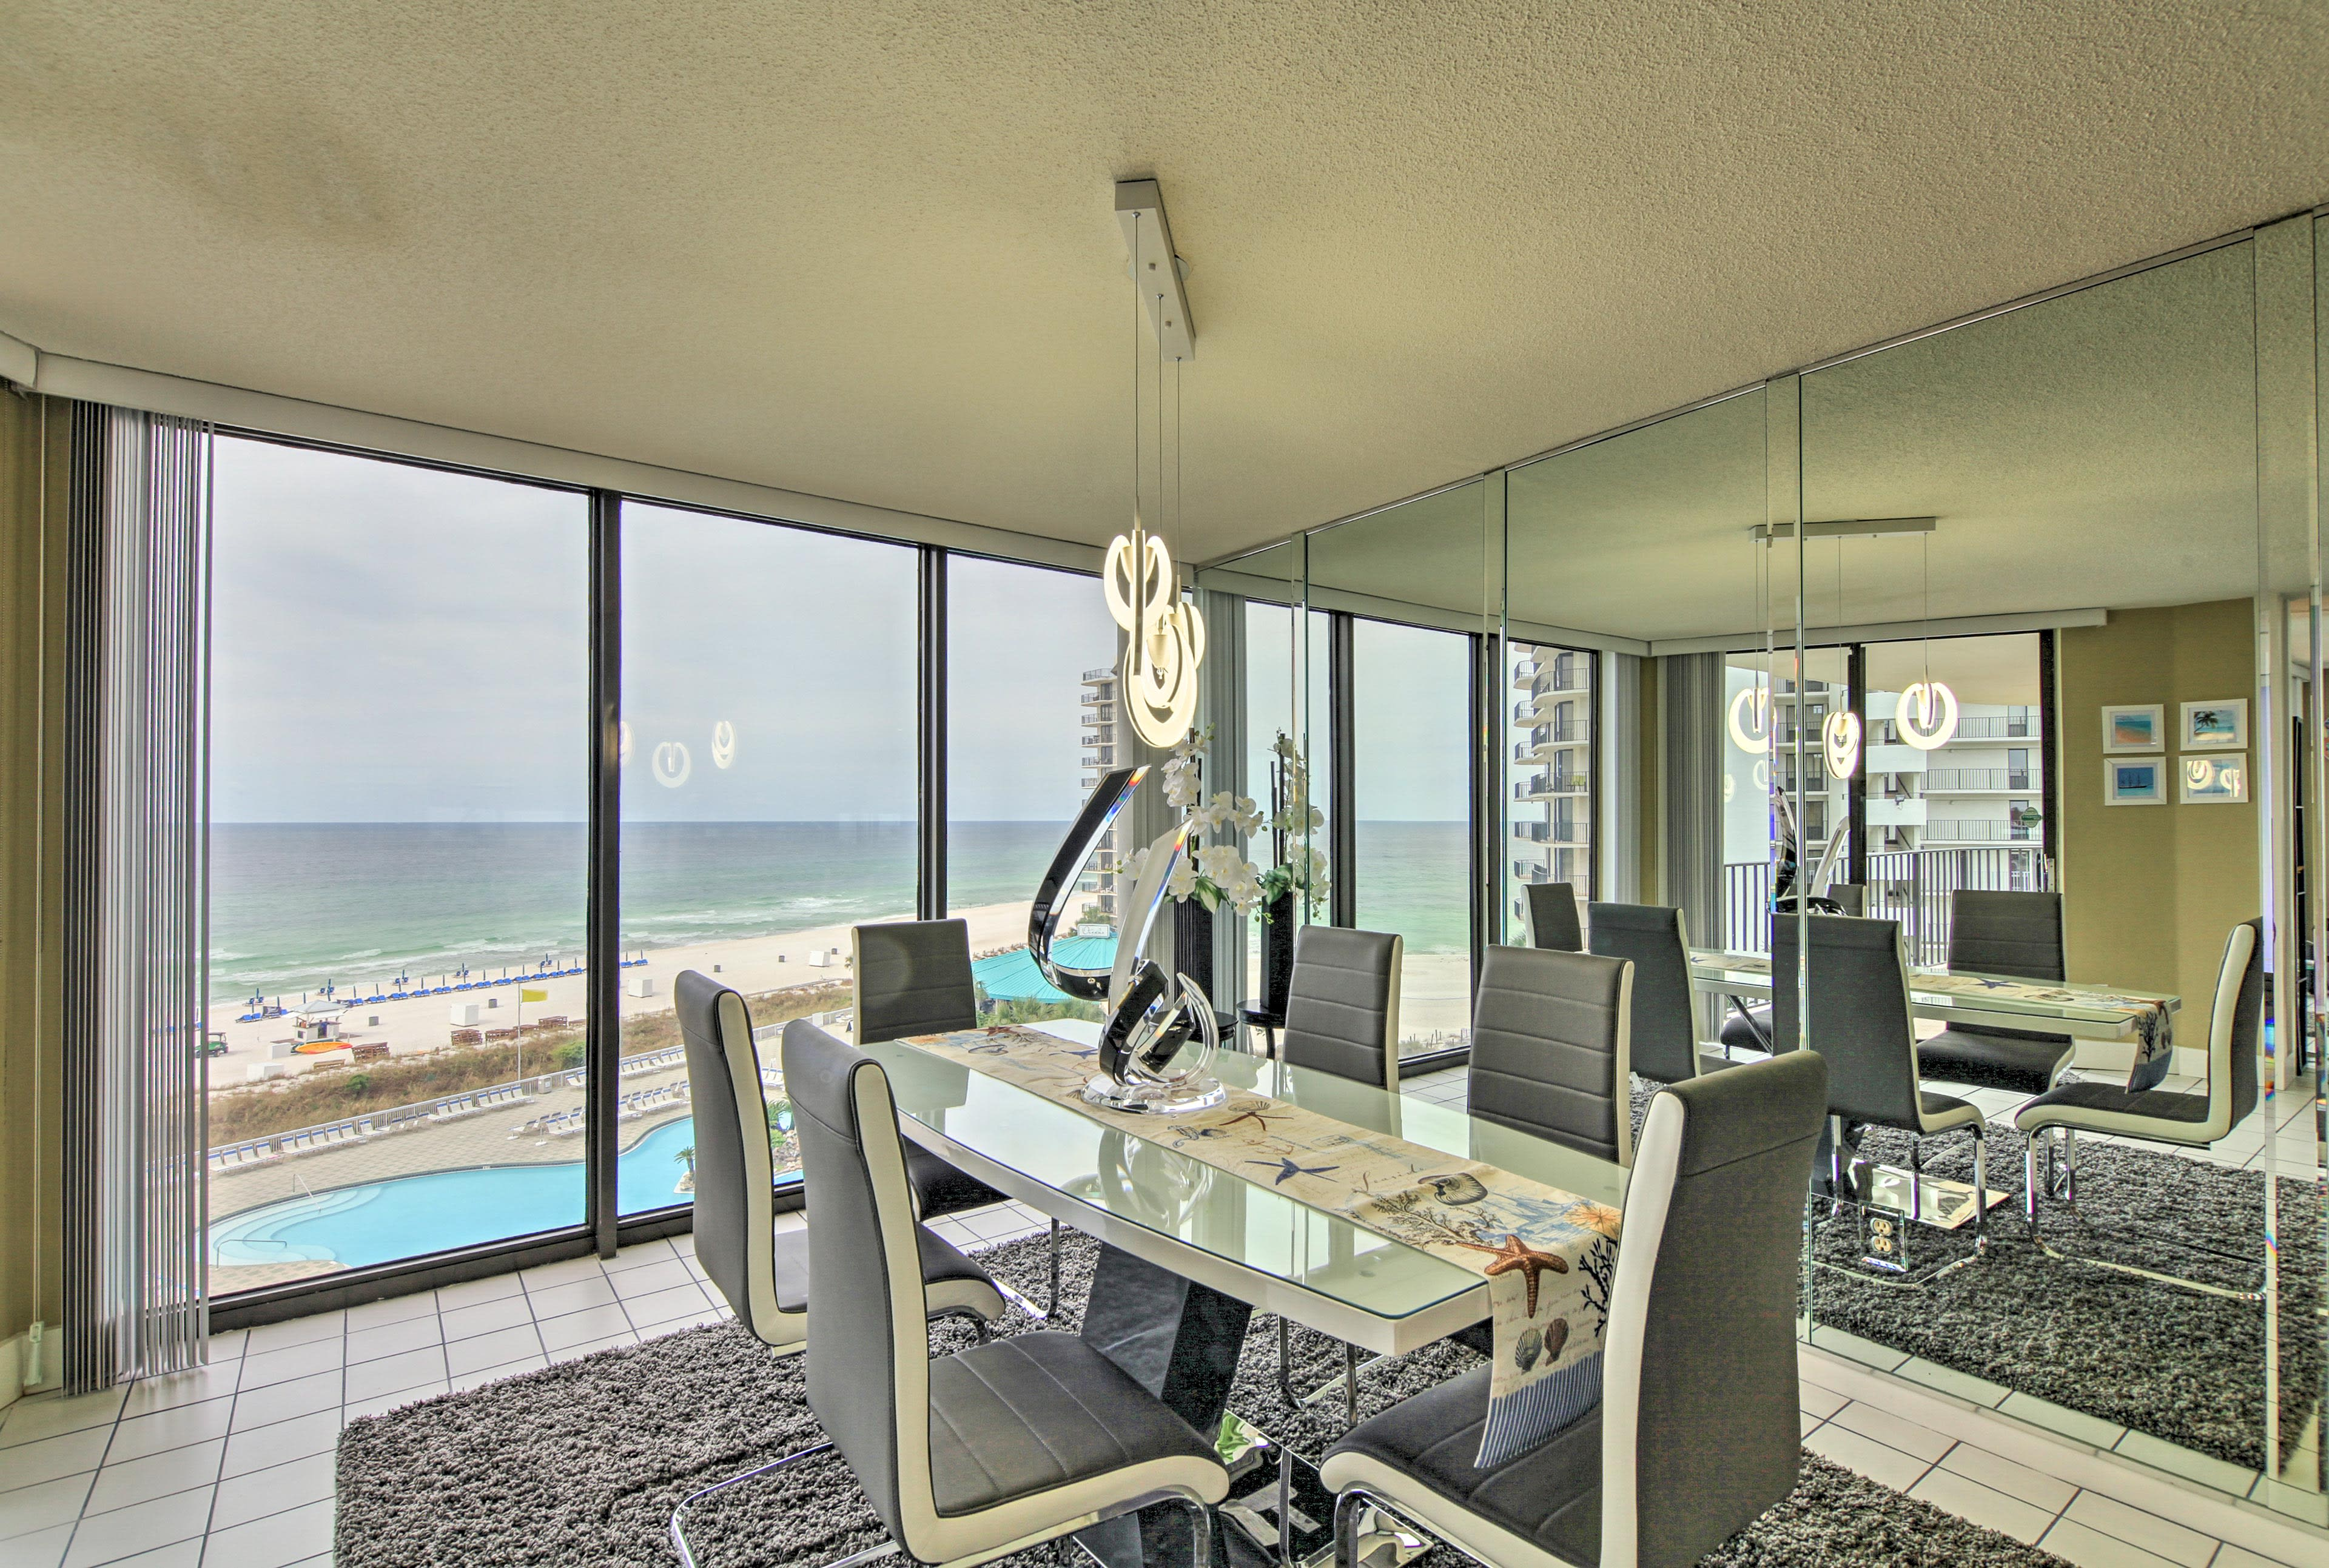 The dining nook is also lined with floor-to-ceiling windows.